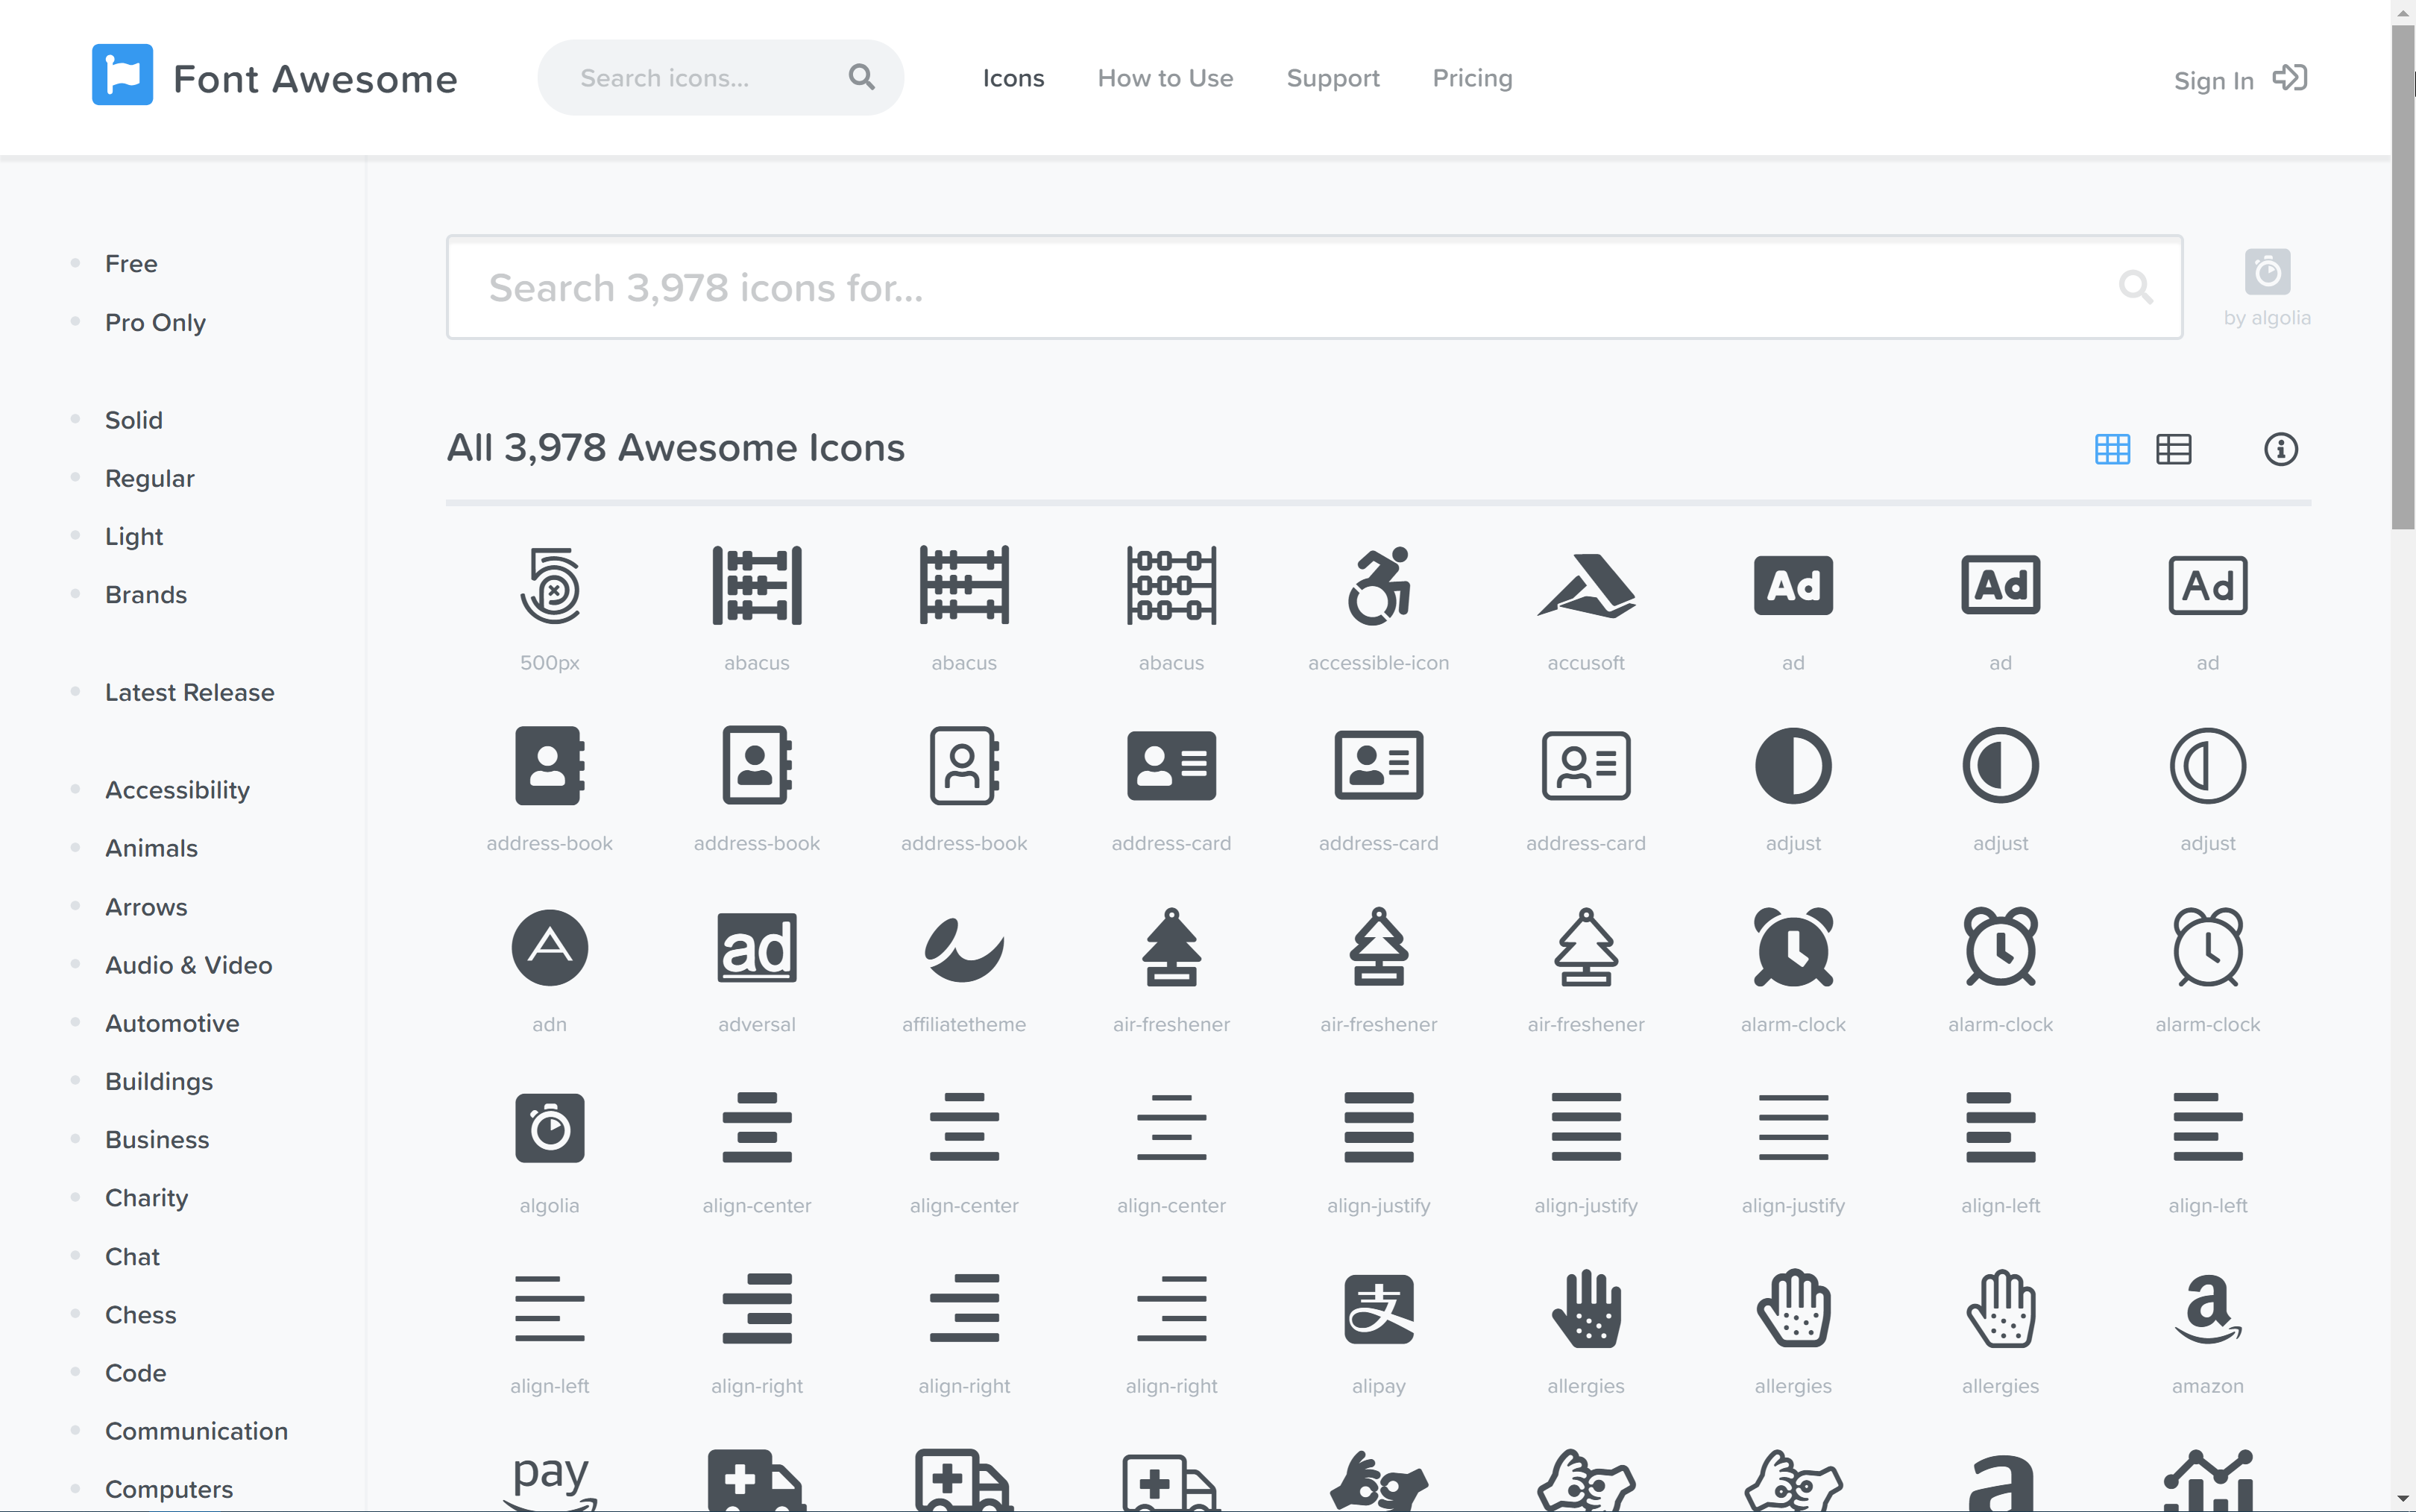 Font Awesome website with its icons